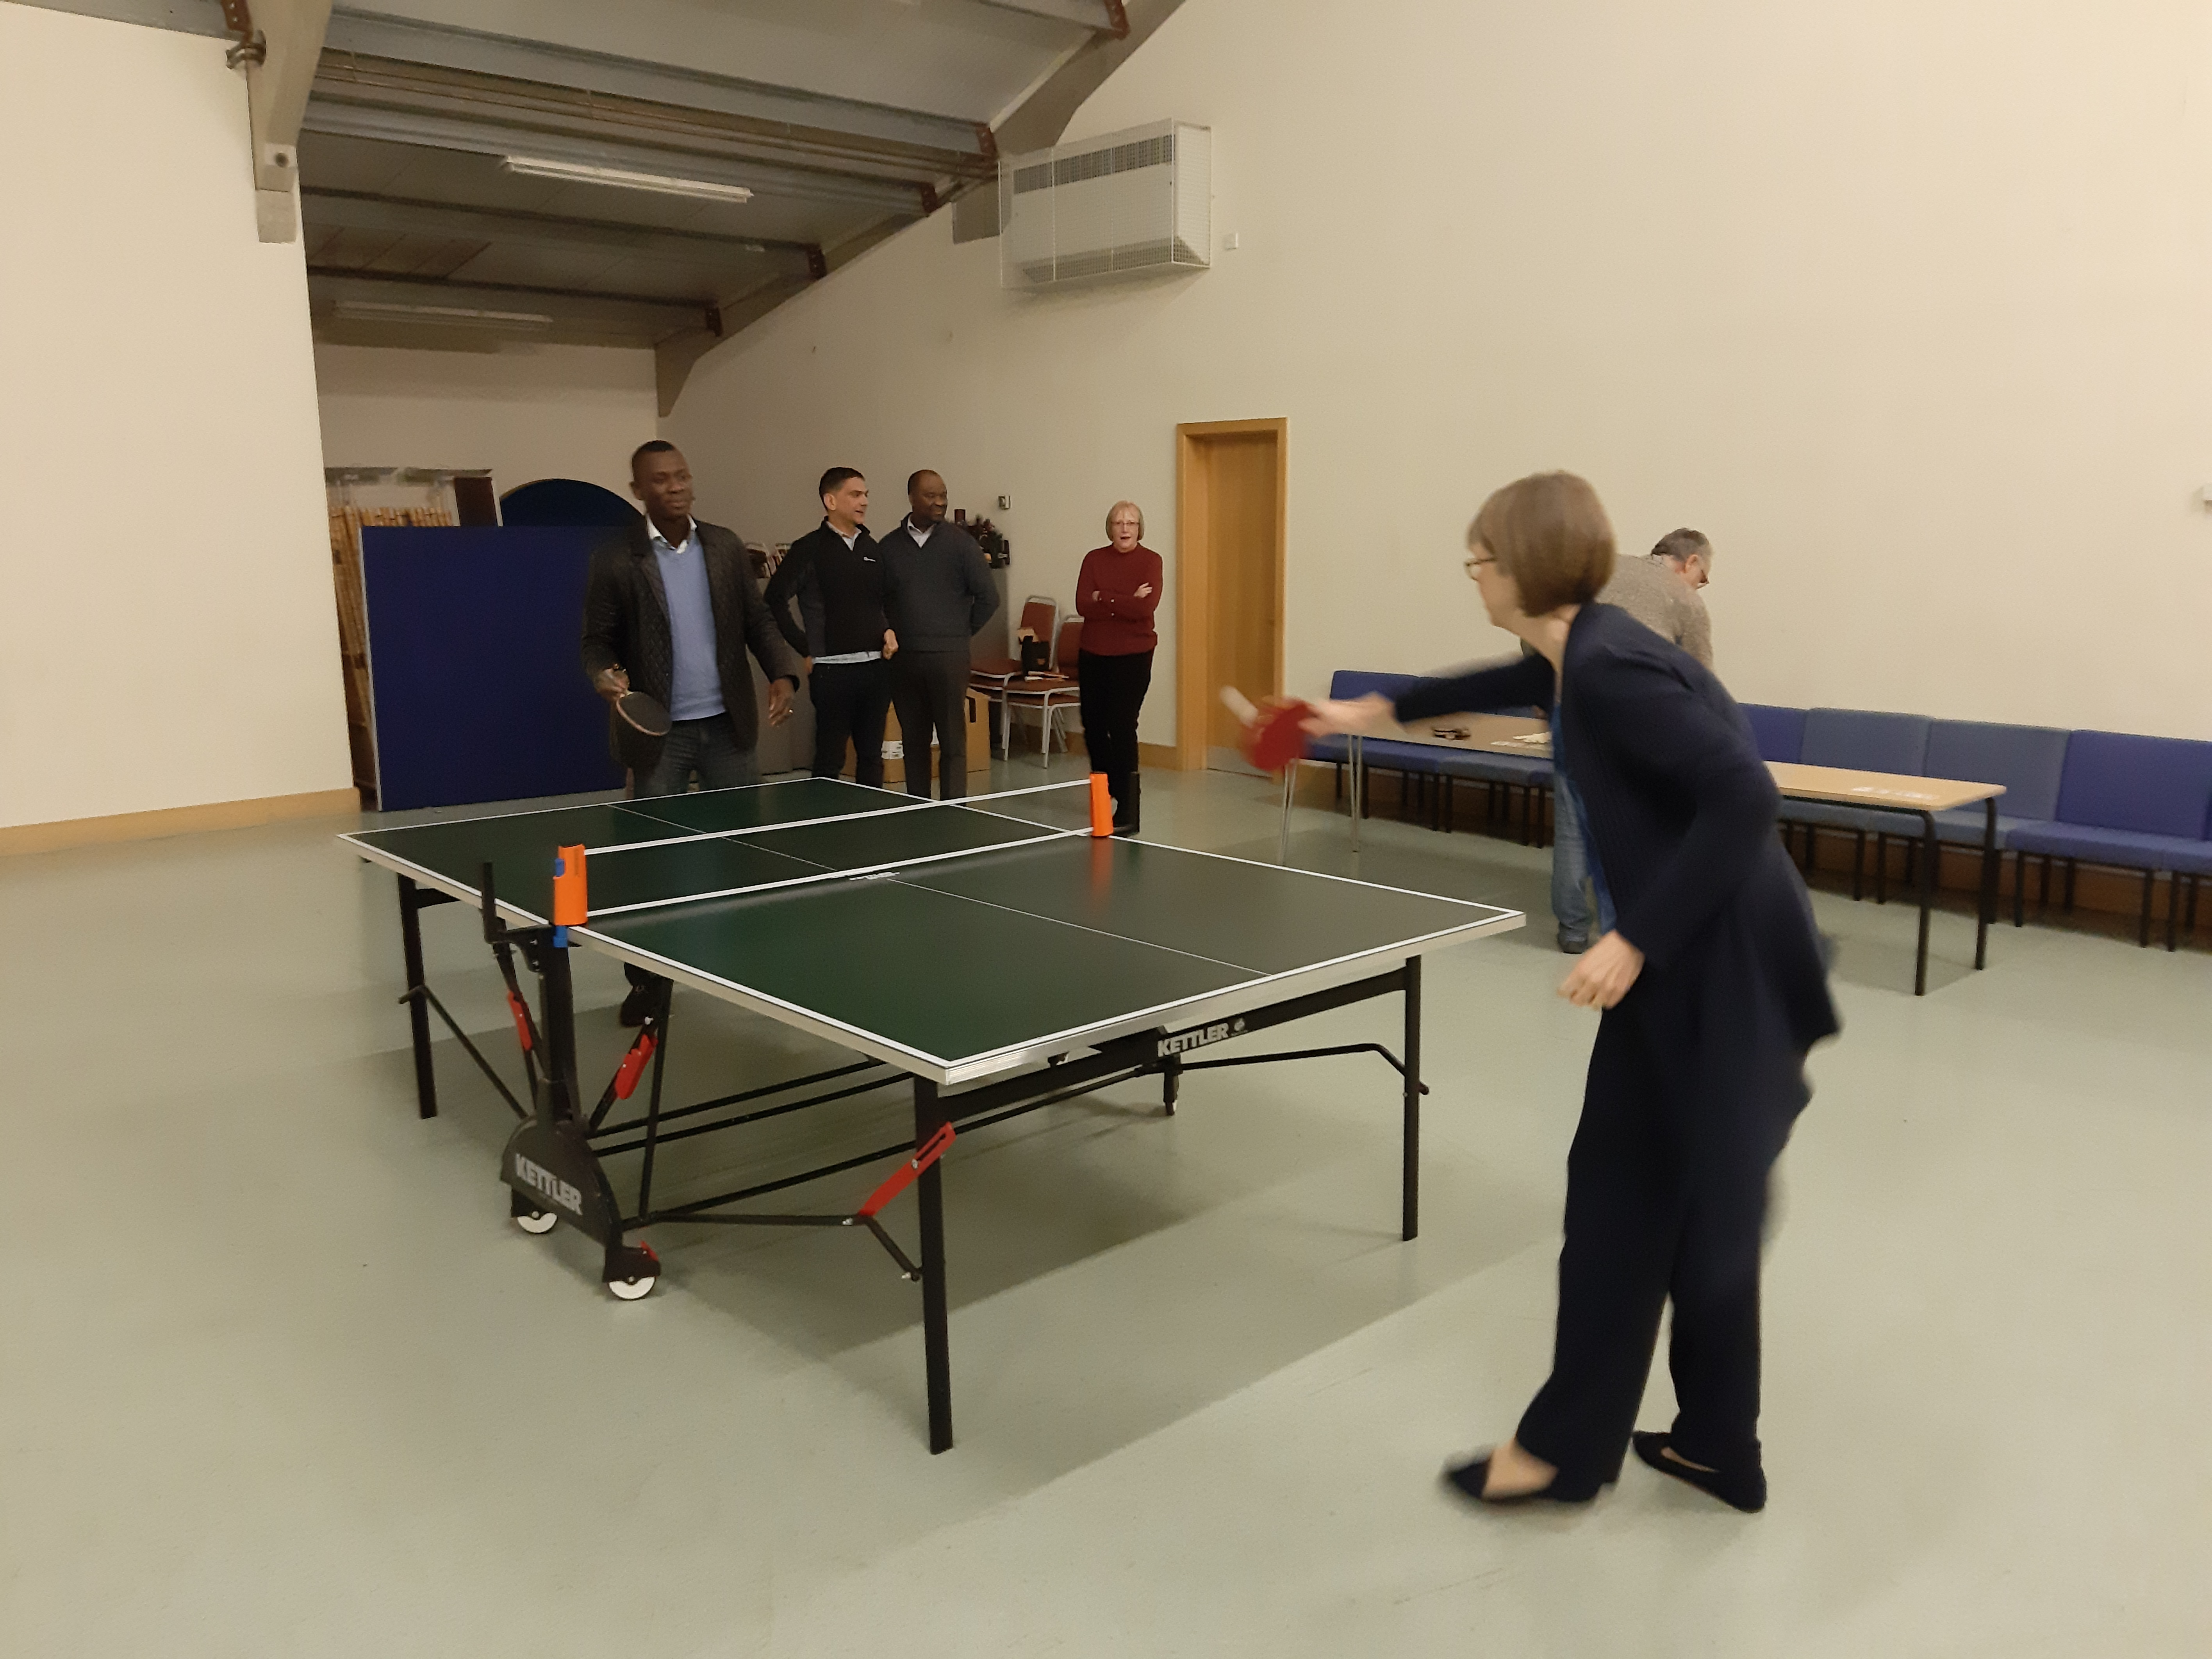 19'11'27 - BSG Table Tennis at